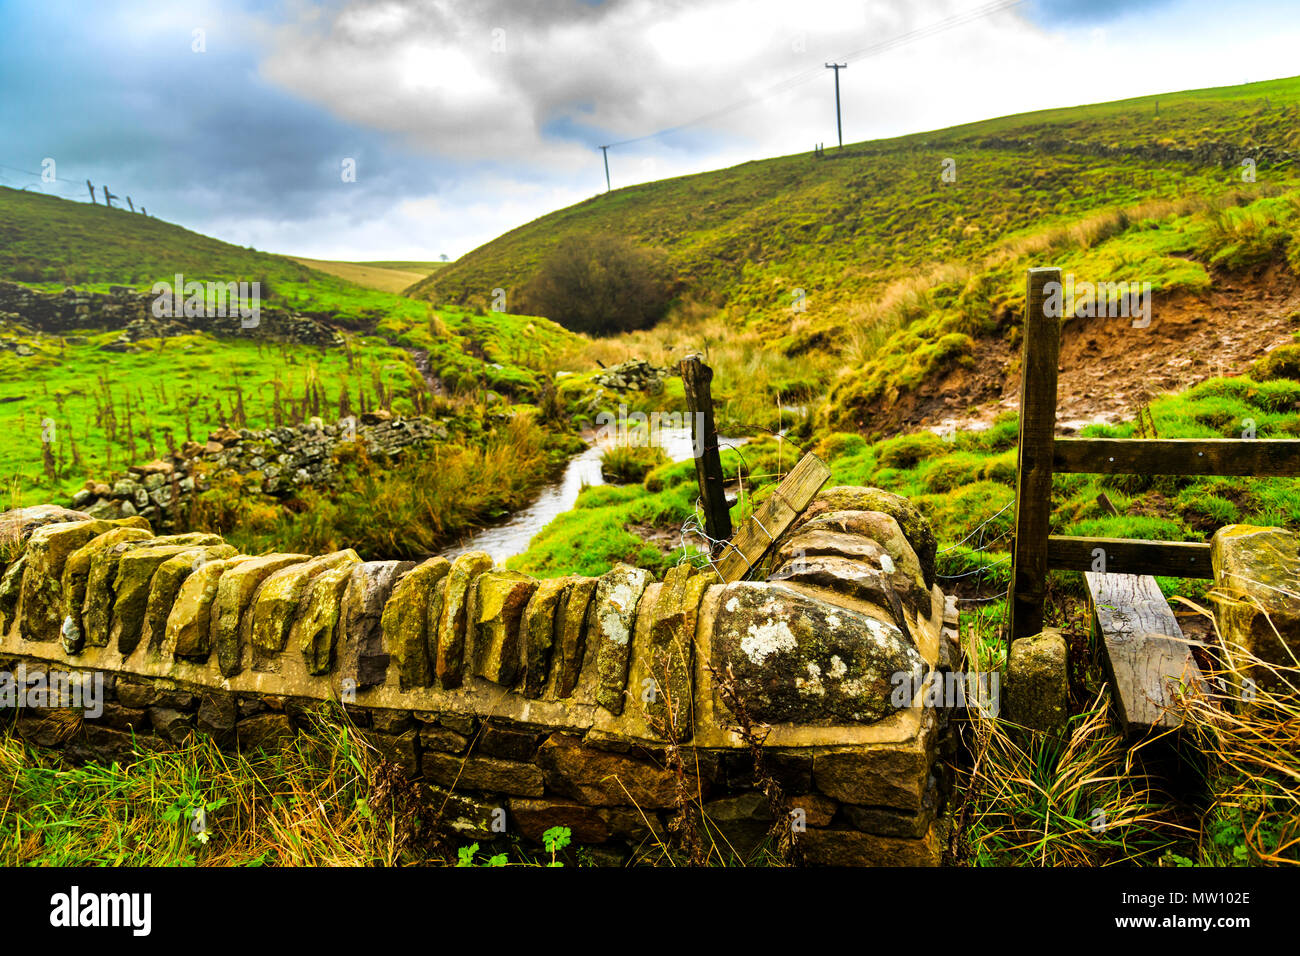 A stile on the rolling green walking hills of Derbyshire - Stock Image